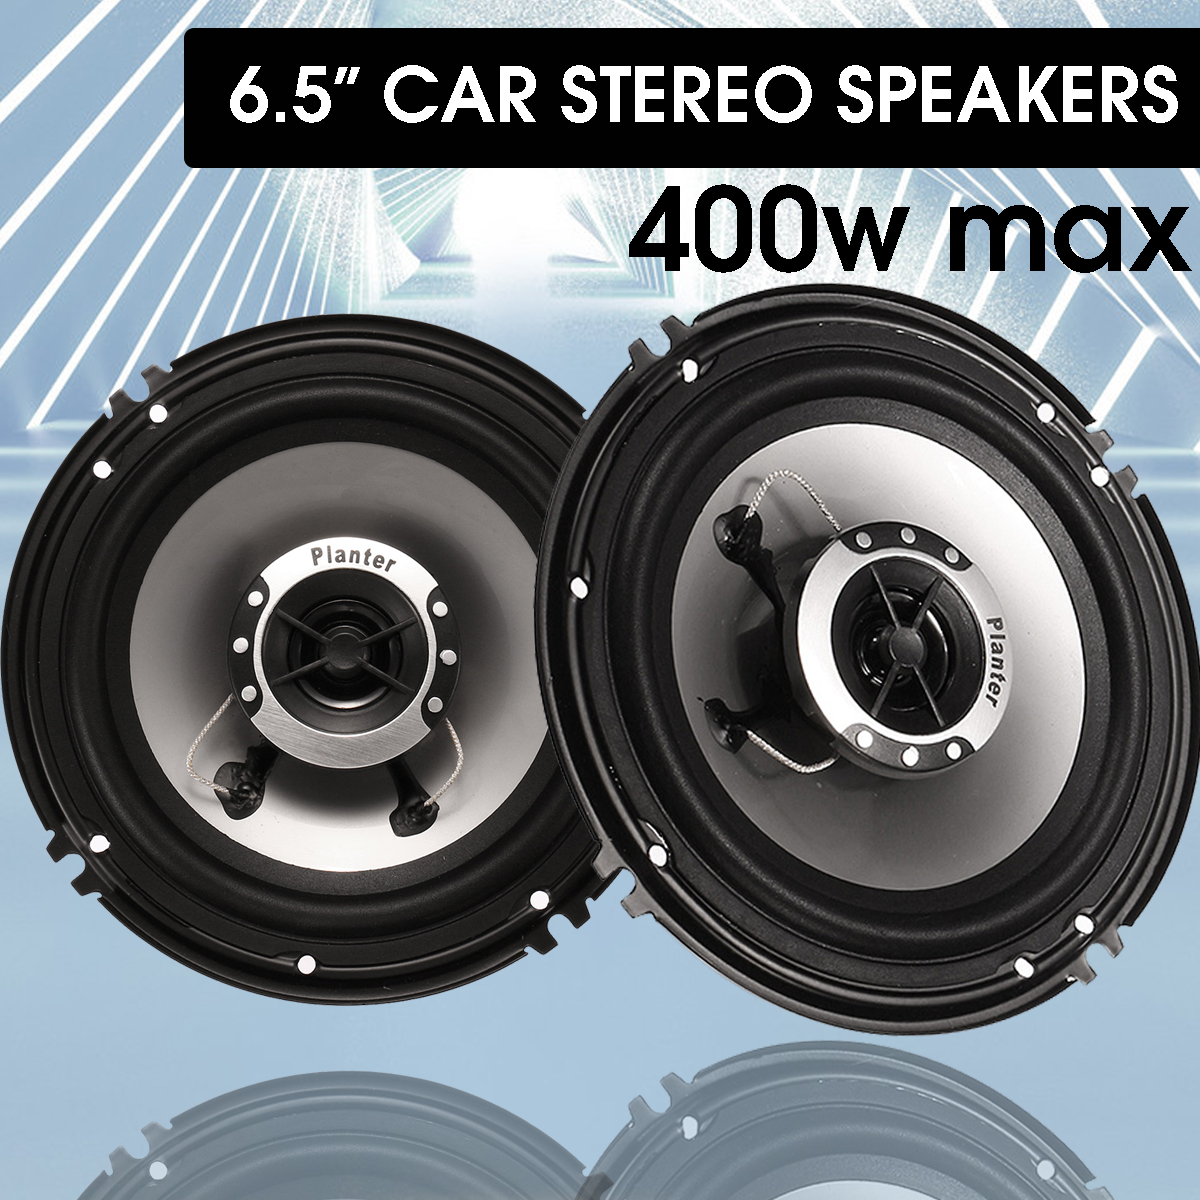 2pcs 6.5 Inch 400W <font><b>Car</b></font> <font><b>Audio</b></font> <font><b>Speaker</b></font> 4 Way Coaxial Loud <font><b>Speaker</b></font> Universal Vehicle Auto <font><b>Audio</b></font> Music Stereo Hifi Loudspeakers image